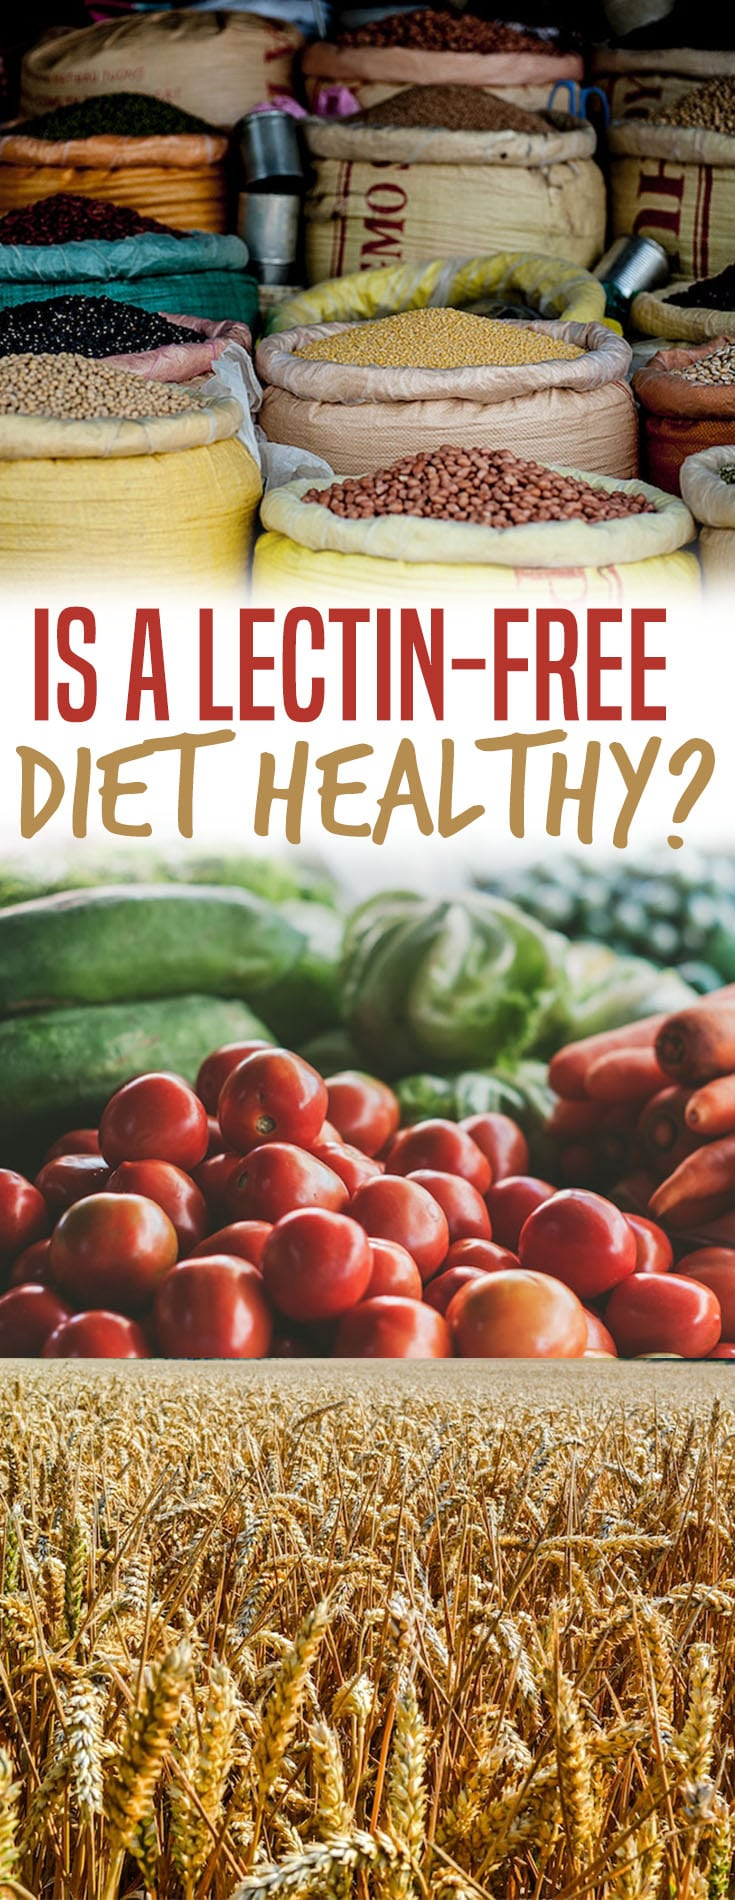 Let's find out whether a lectin-free diet is the new gluten-free diet, and more importantly, does it live up to its lengthy claims?